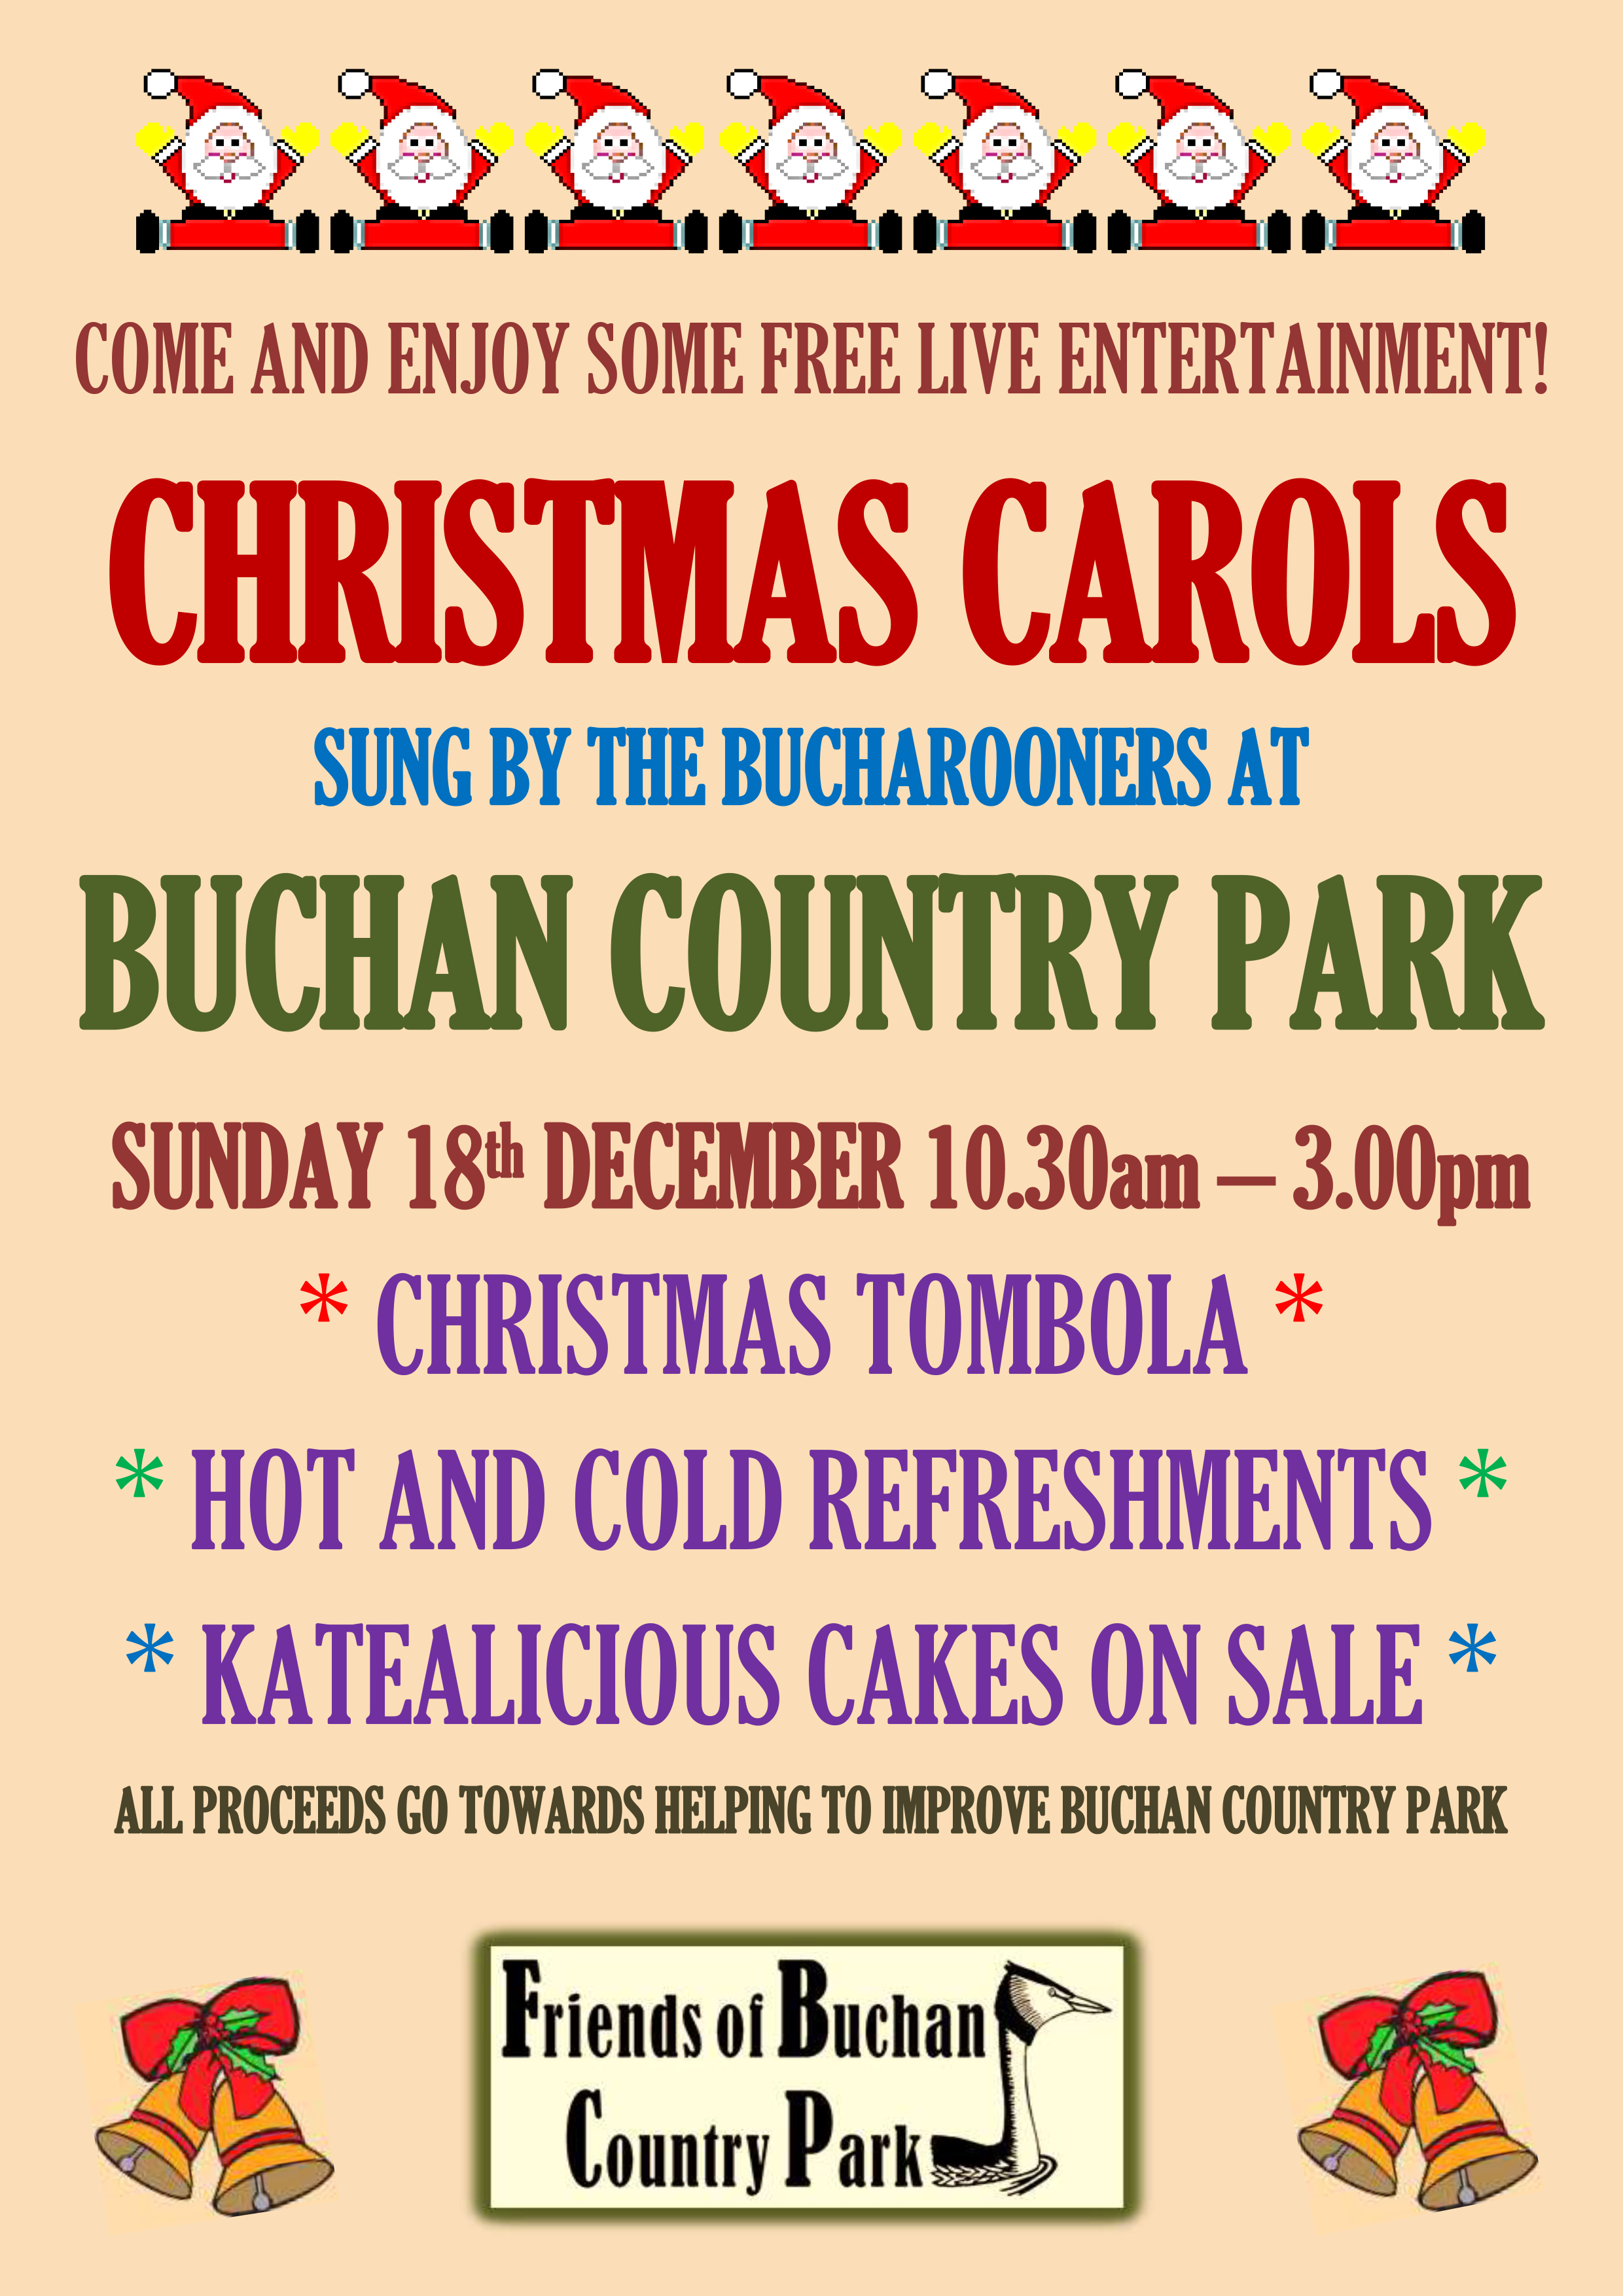 Friends Of Buchan Country Park Christmas Carols 2016 Poster